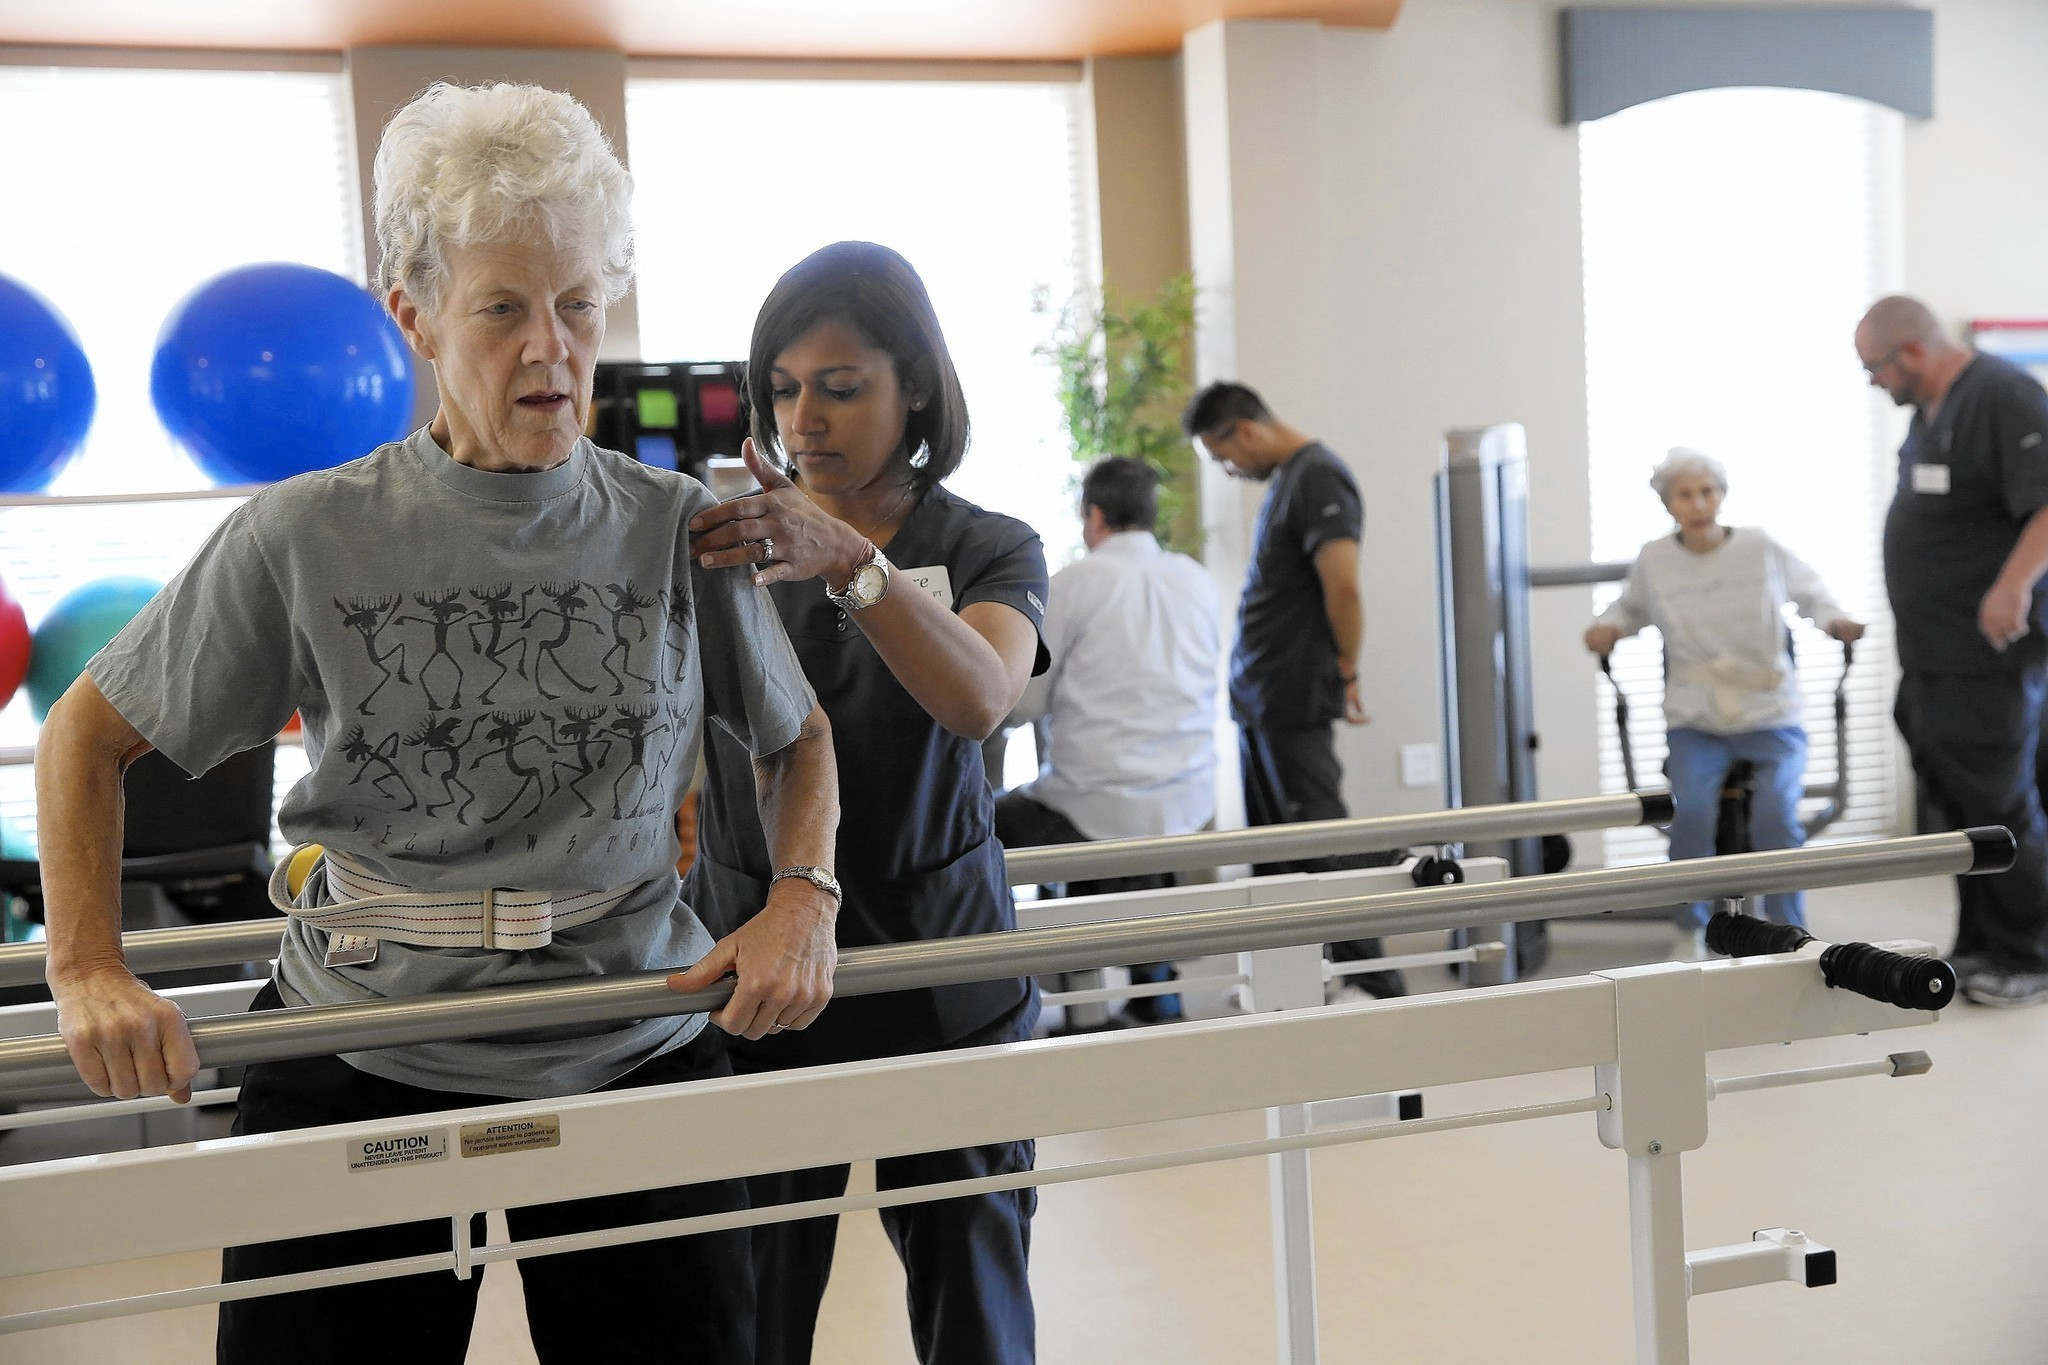 Nursing homes for boomers gain traction over opposition in Chicago